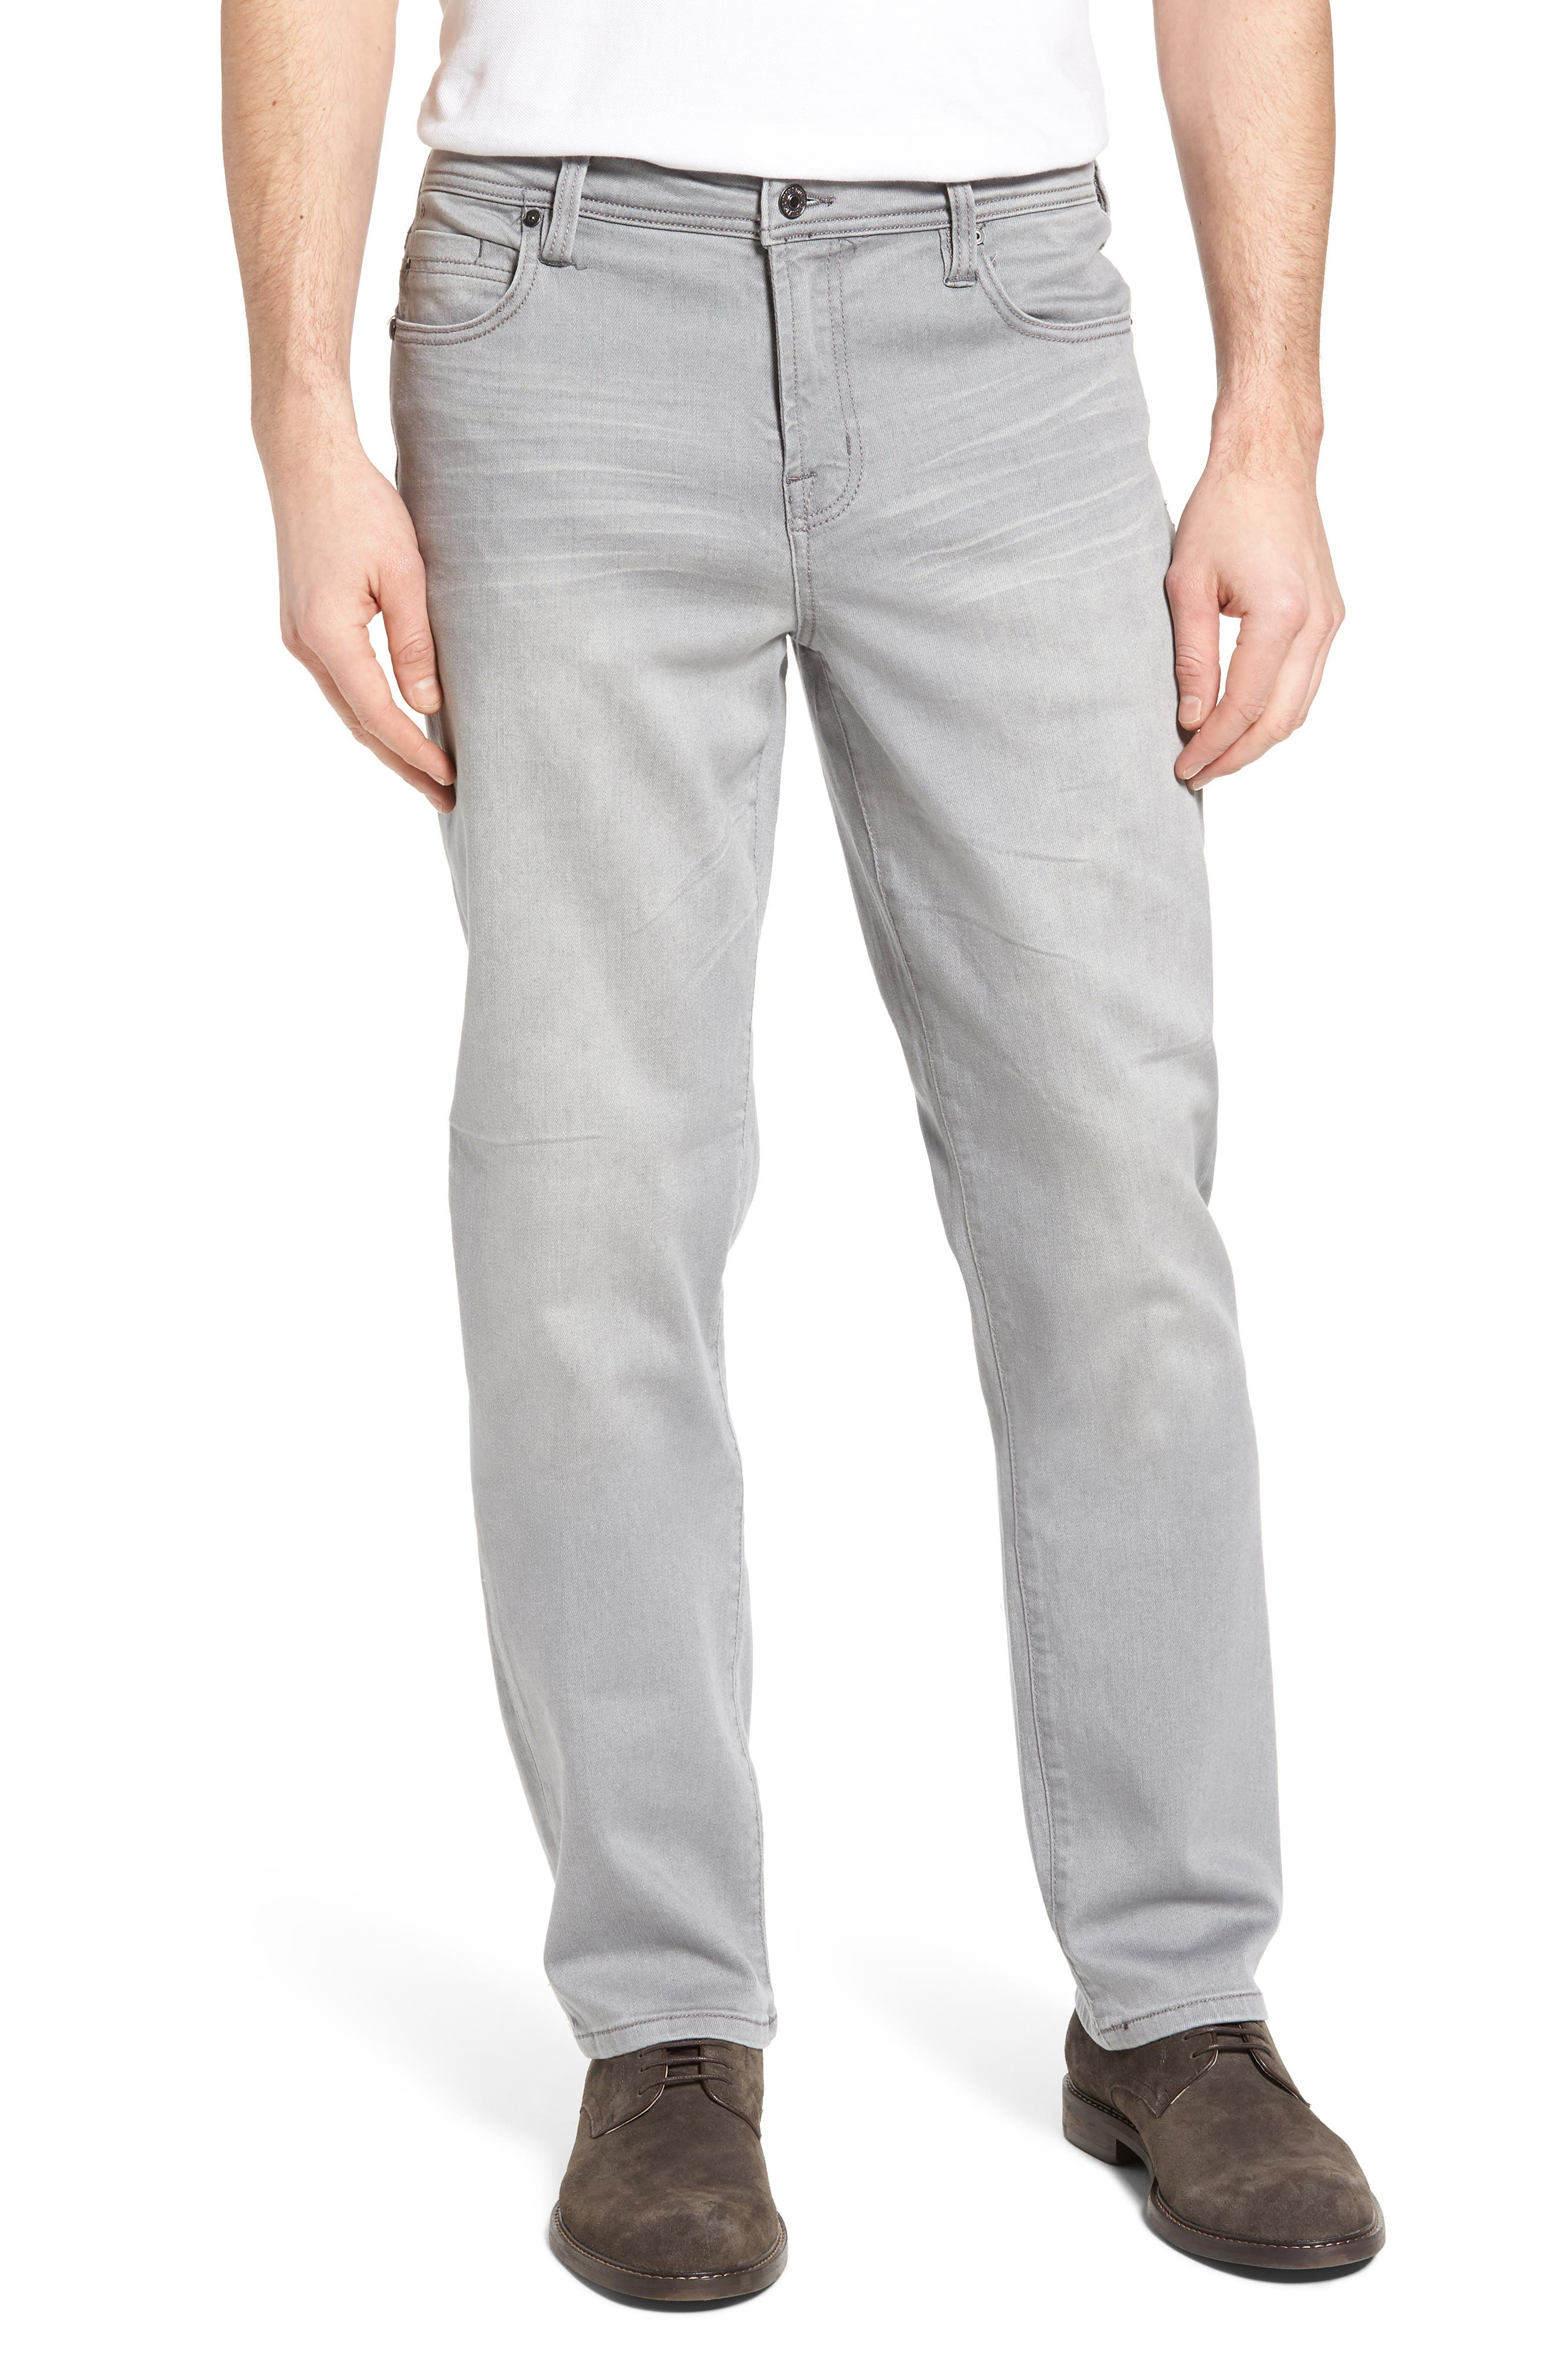 Jeans Co. Regent Relaxed Fit Jeans,                             Main thumbnail 1, color,                             Coal Mine Dark